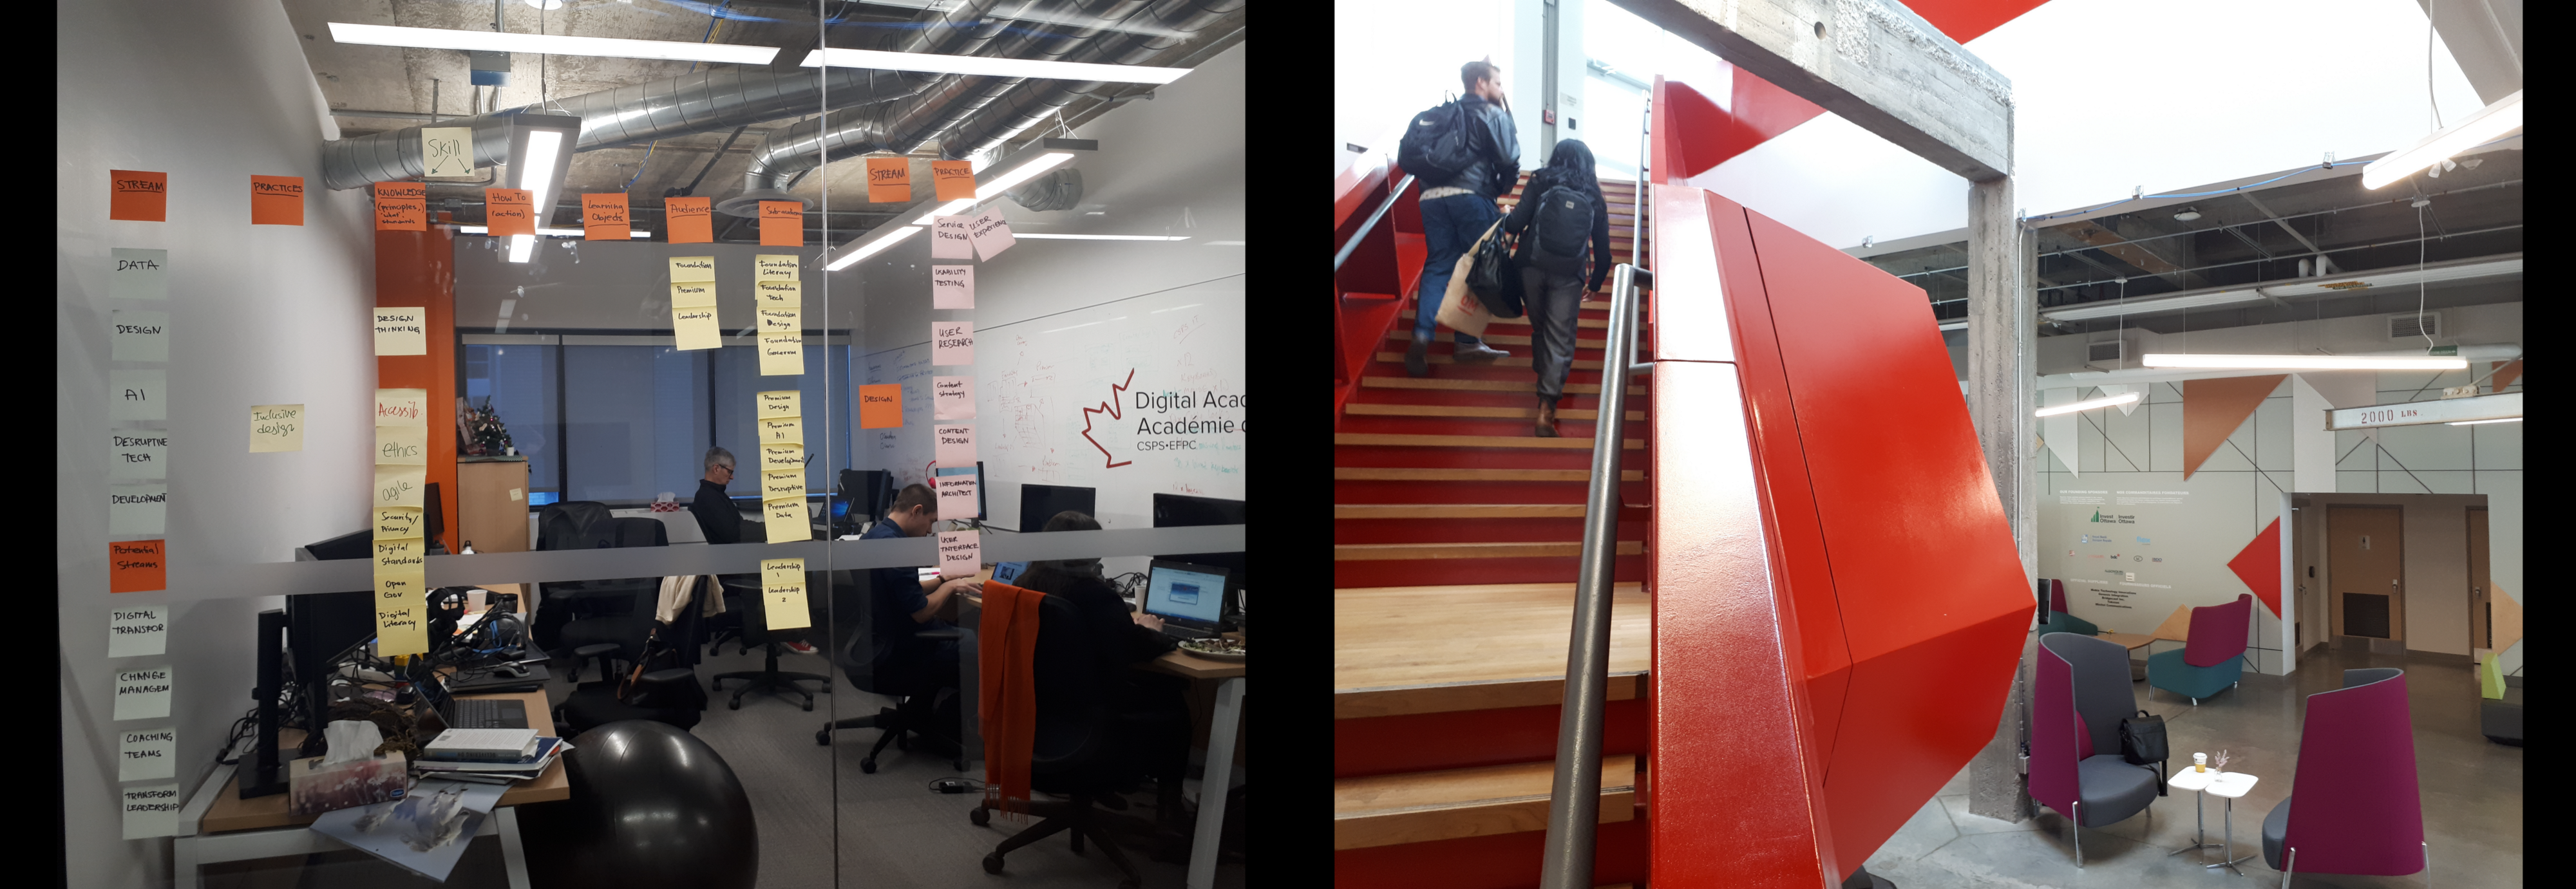 Photos of the first Digital Academy office and the new space at Bayview Yards, side by side.